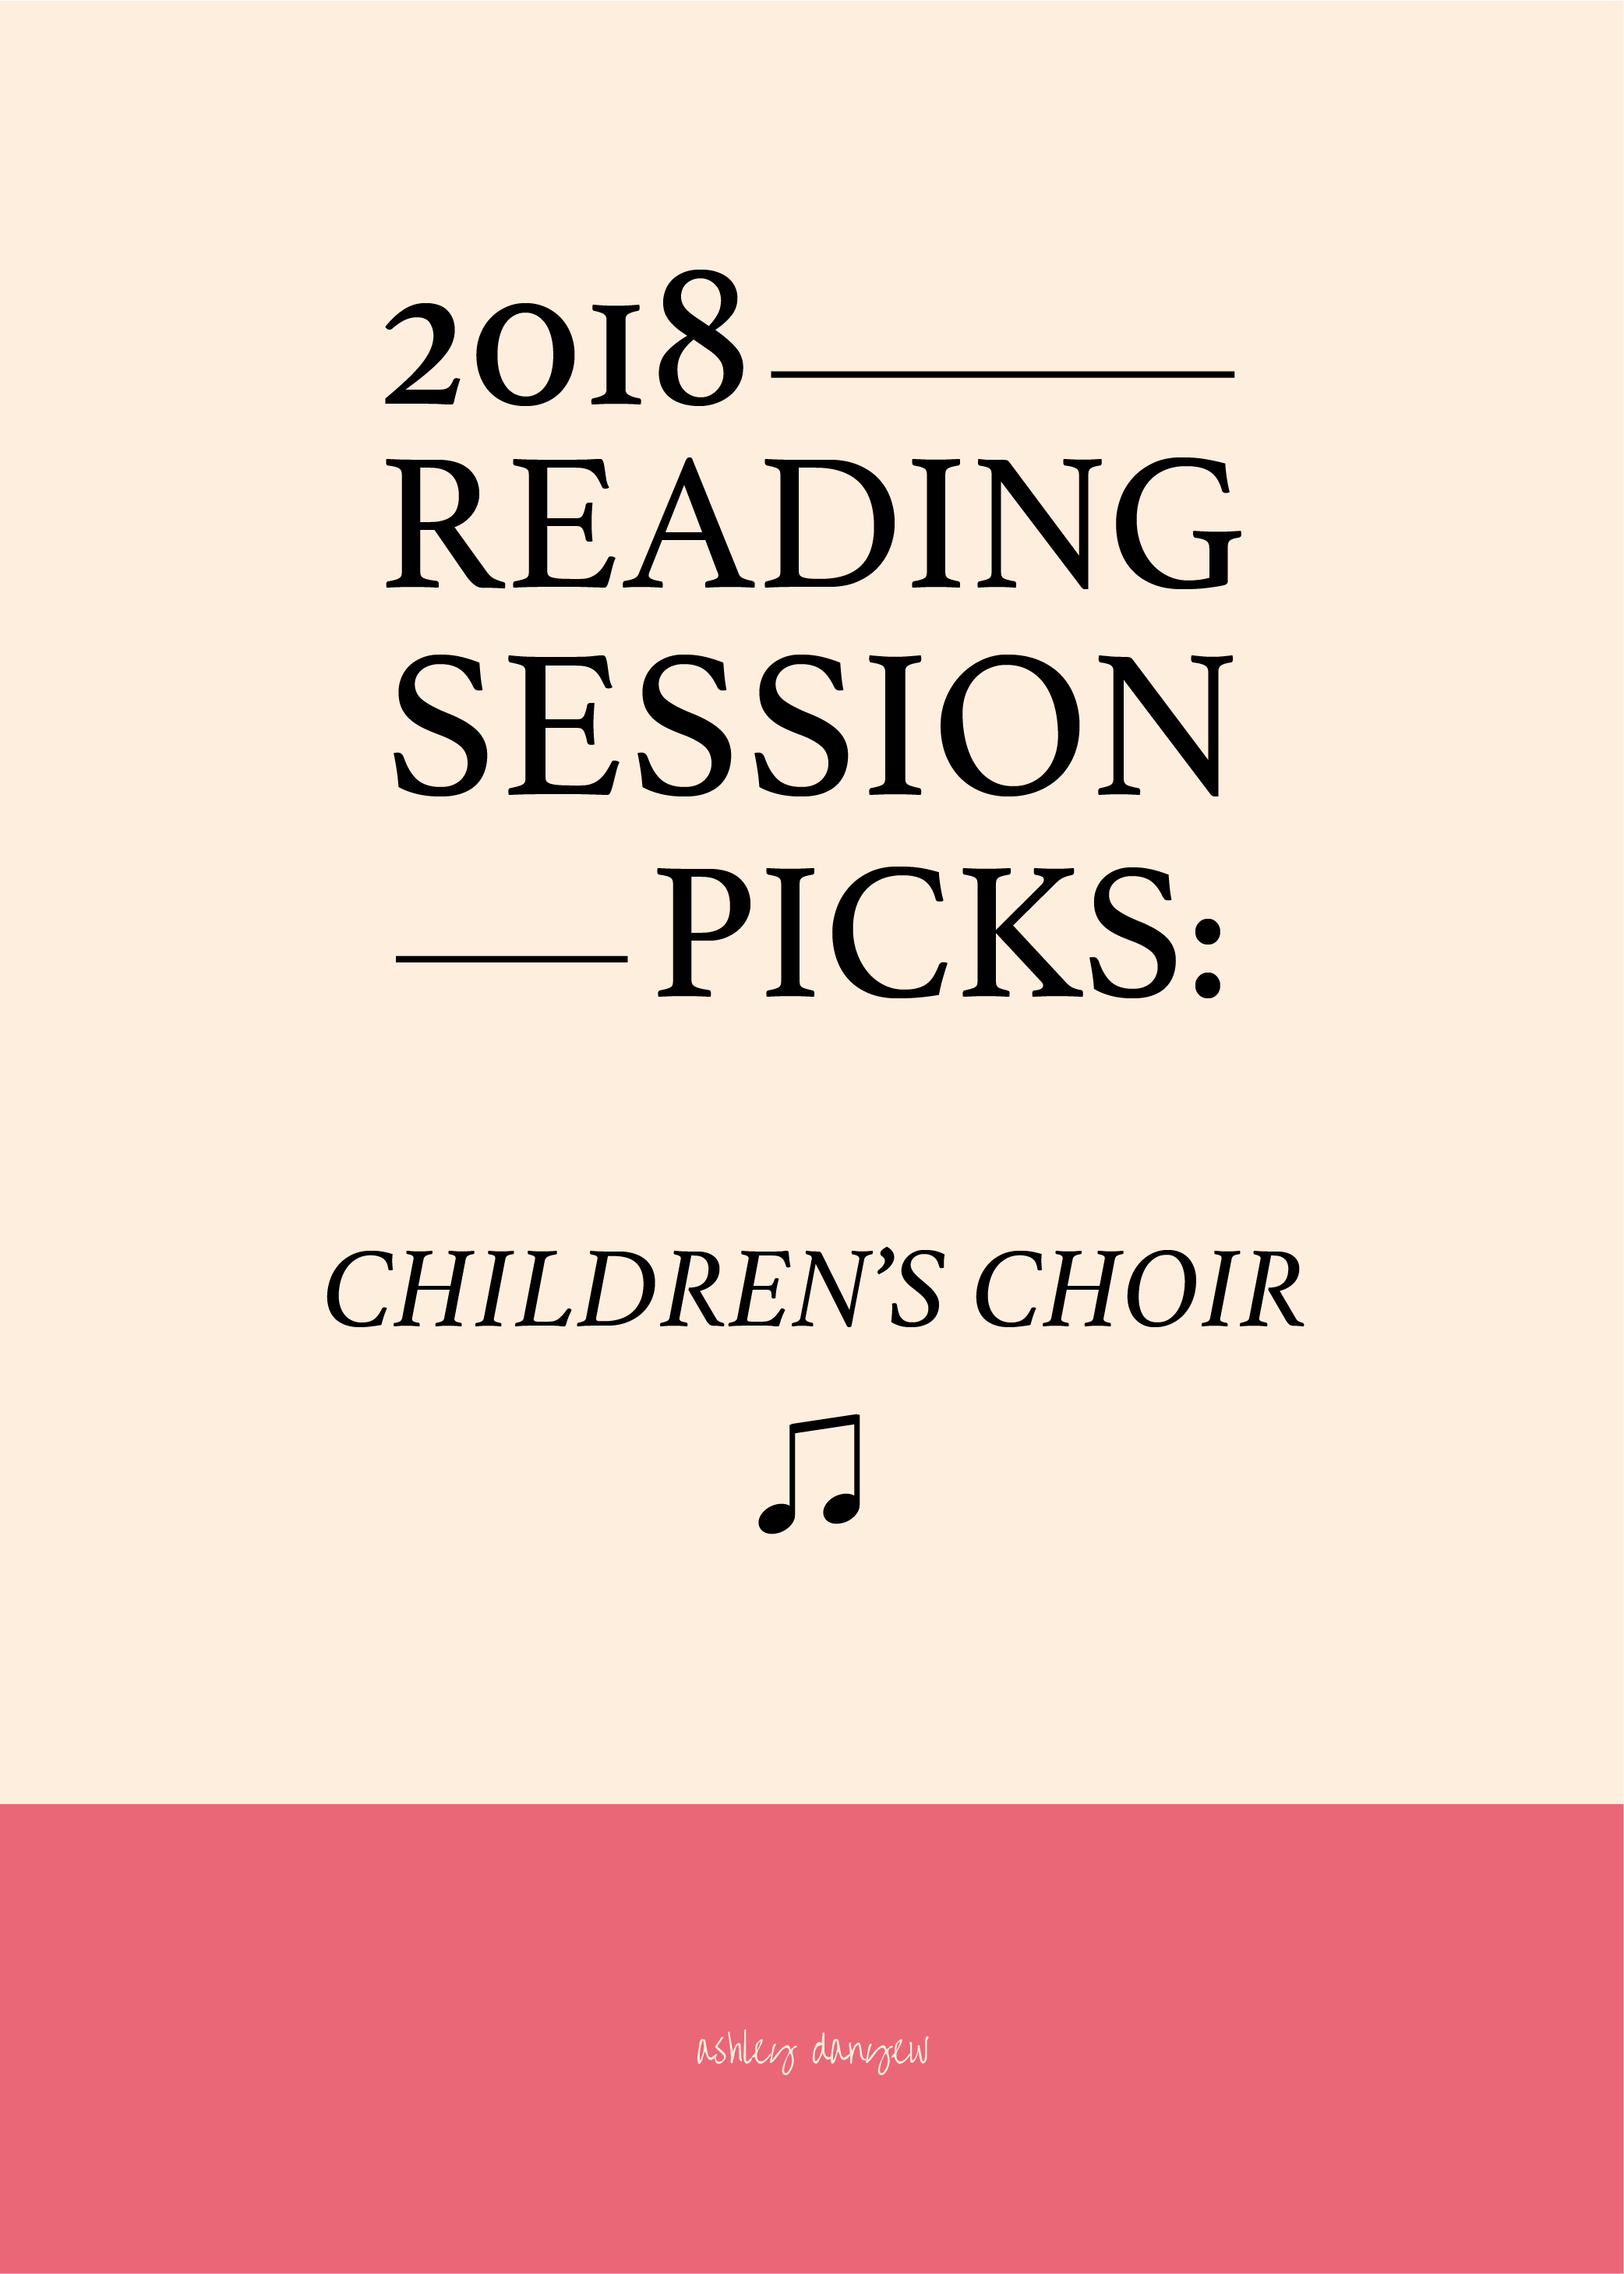 2018 Reading Session Picks: Children's Choir